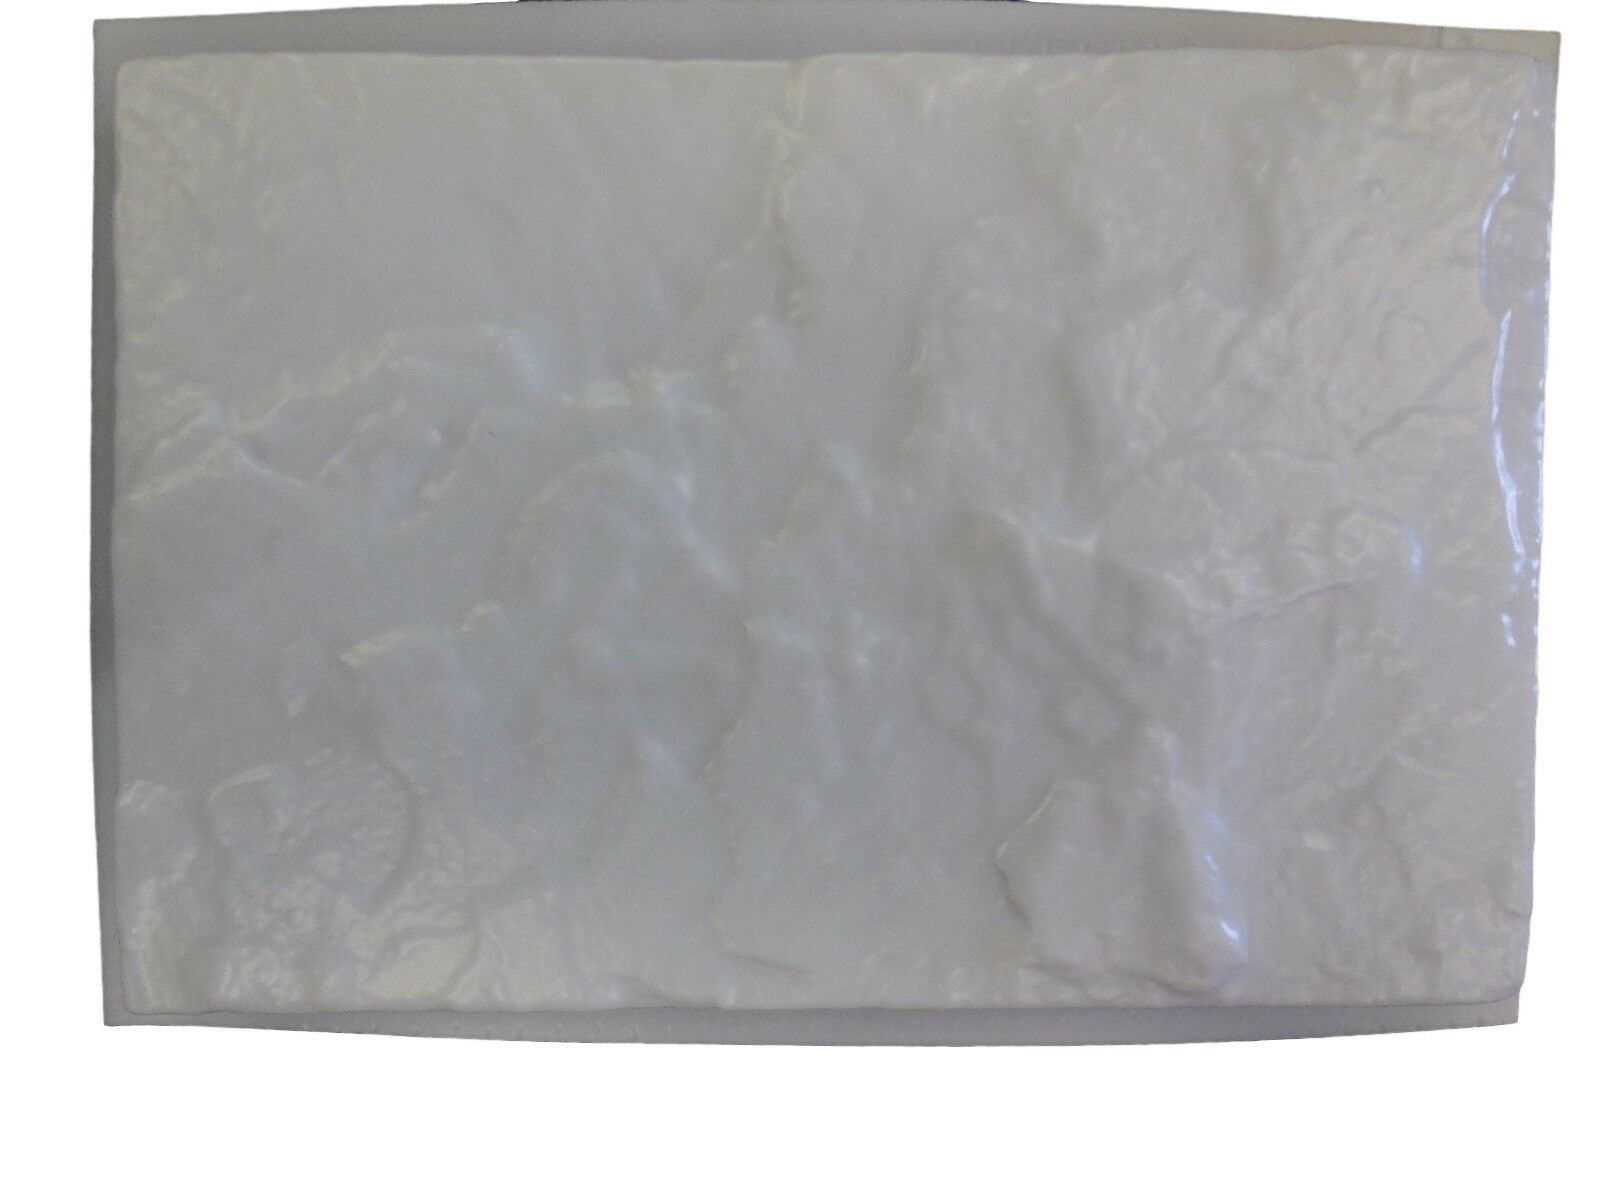 11 by 17 Flagstone Slate Patio Concrete Stepping Stone Mold 2048 Moldcreations